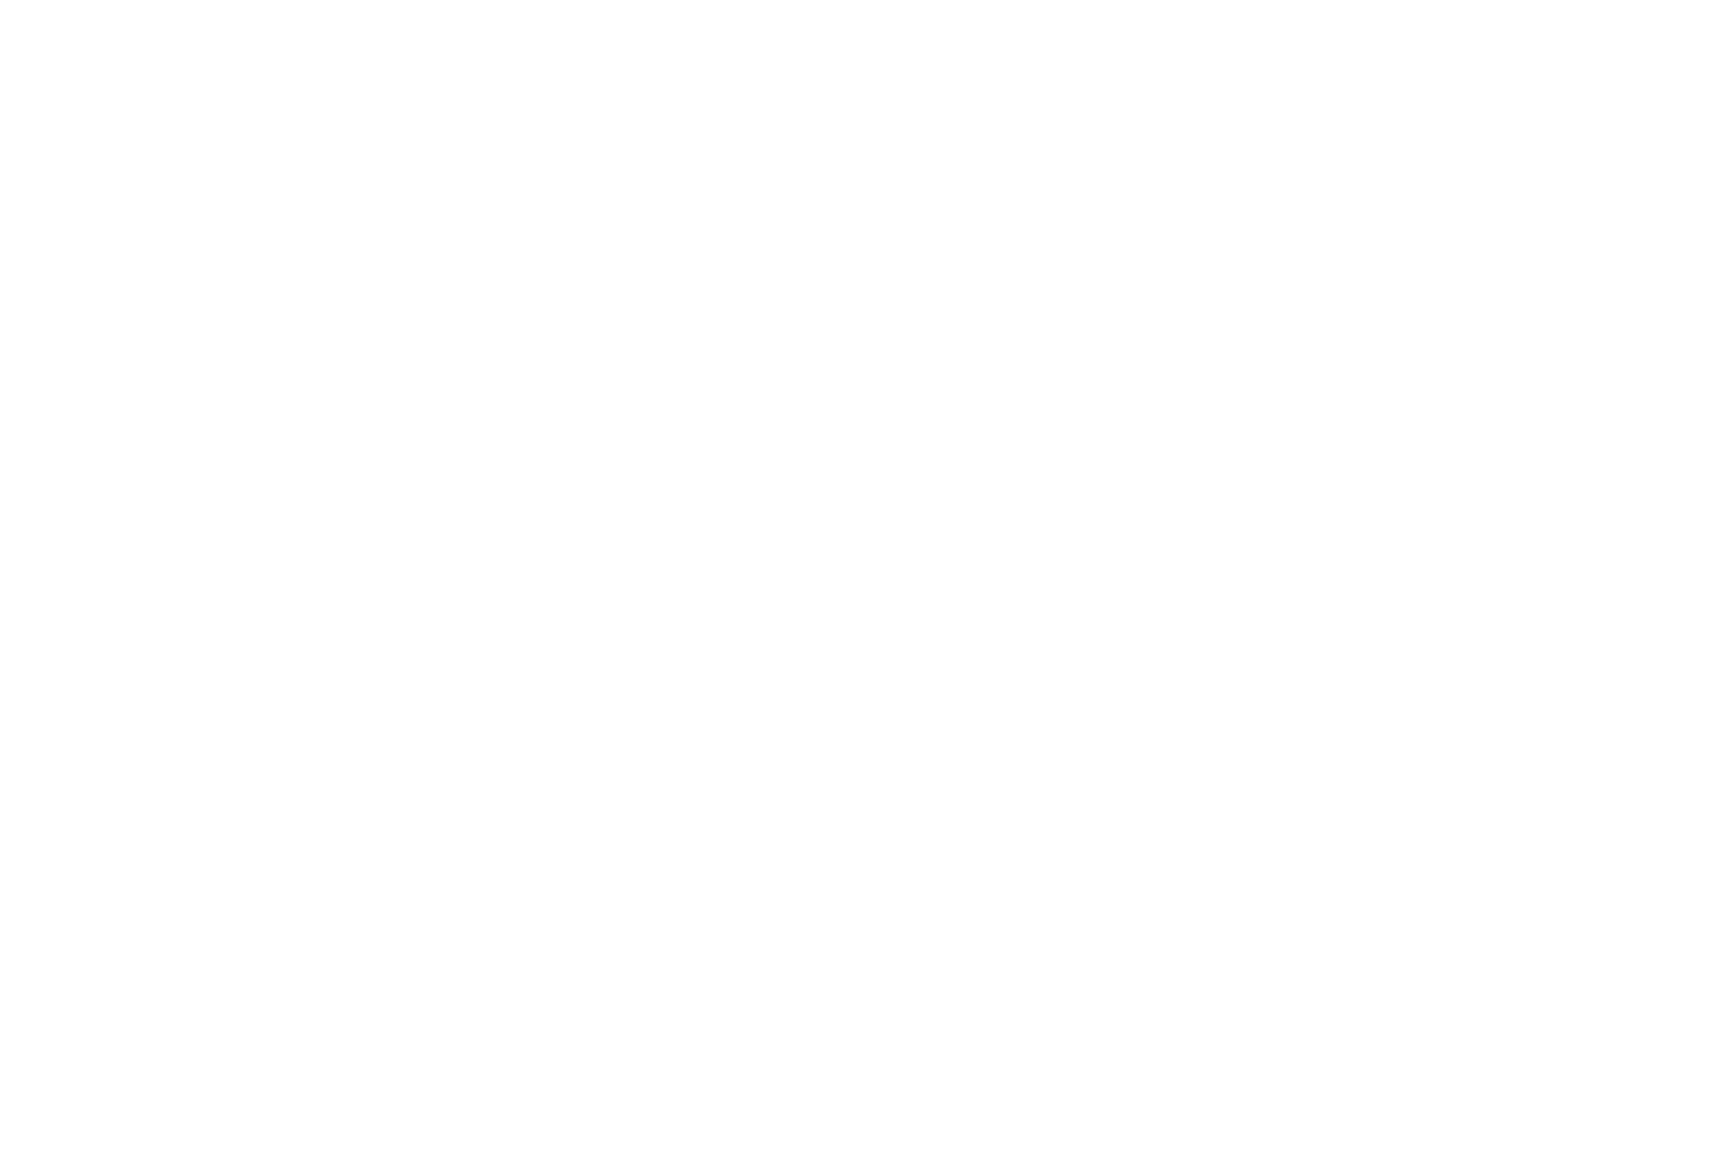 OFFICIAL SELECTION - Christian Film Festival - 2020